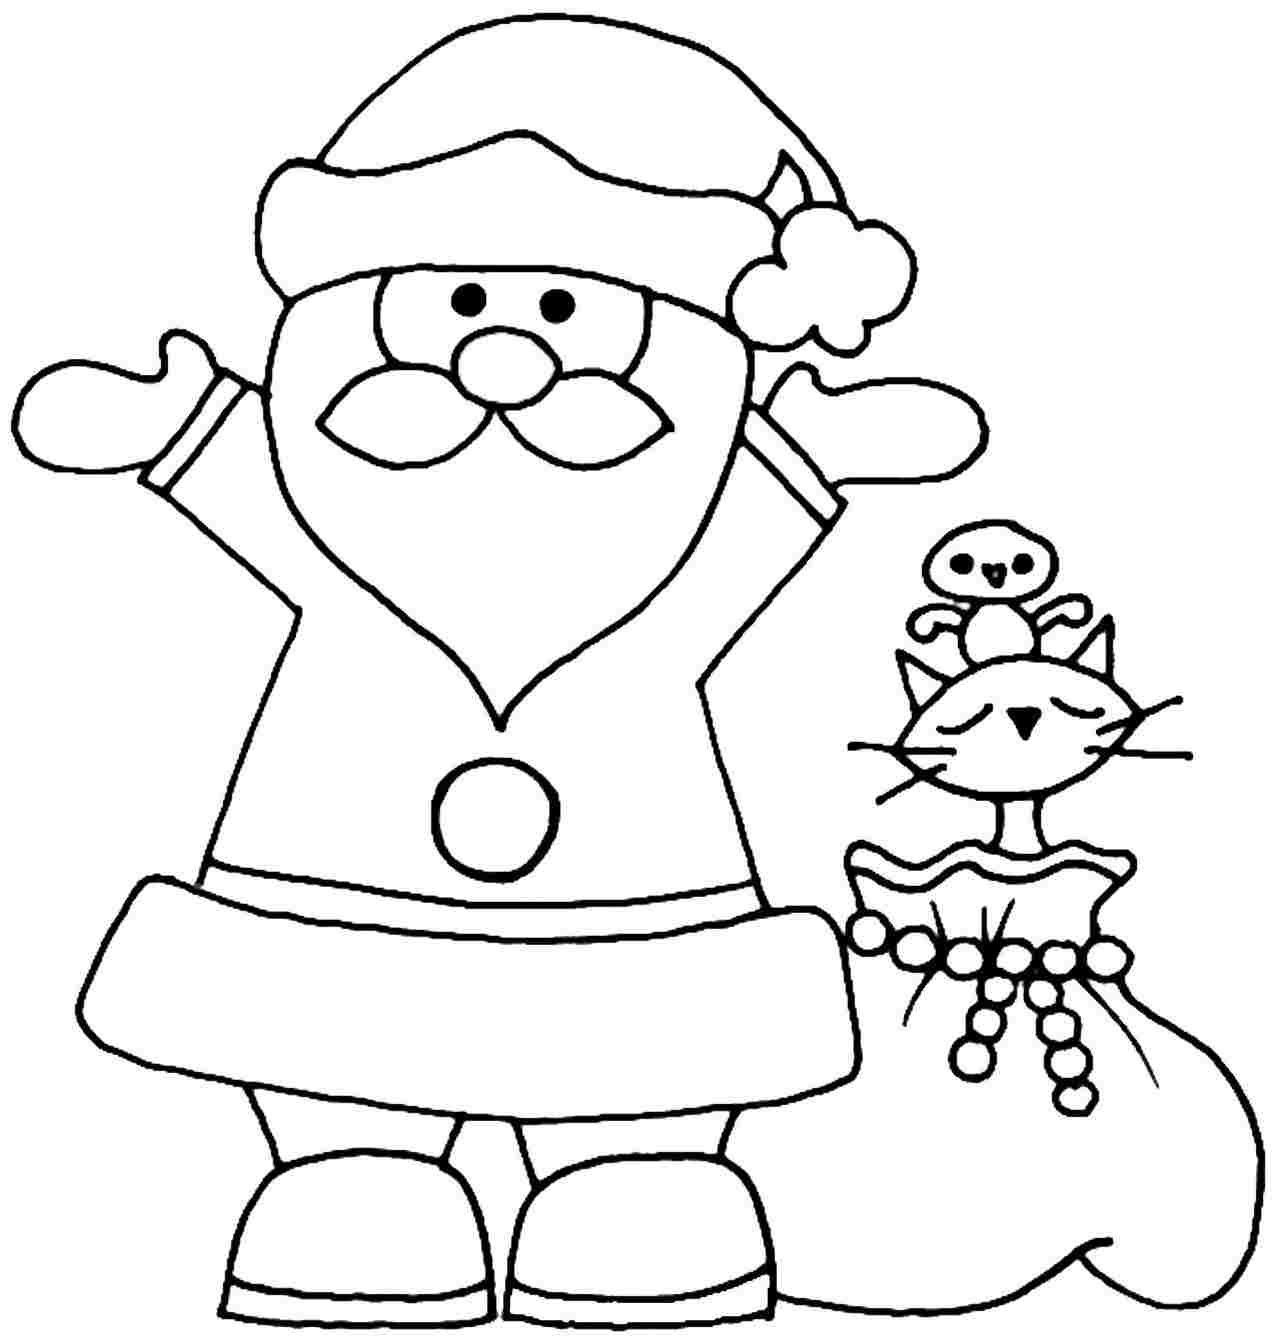 Mrs Claus Coloring Pages - GetColoringPages.com | 1344x1277